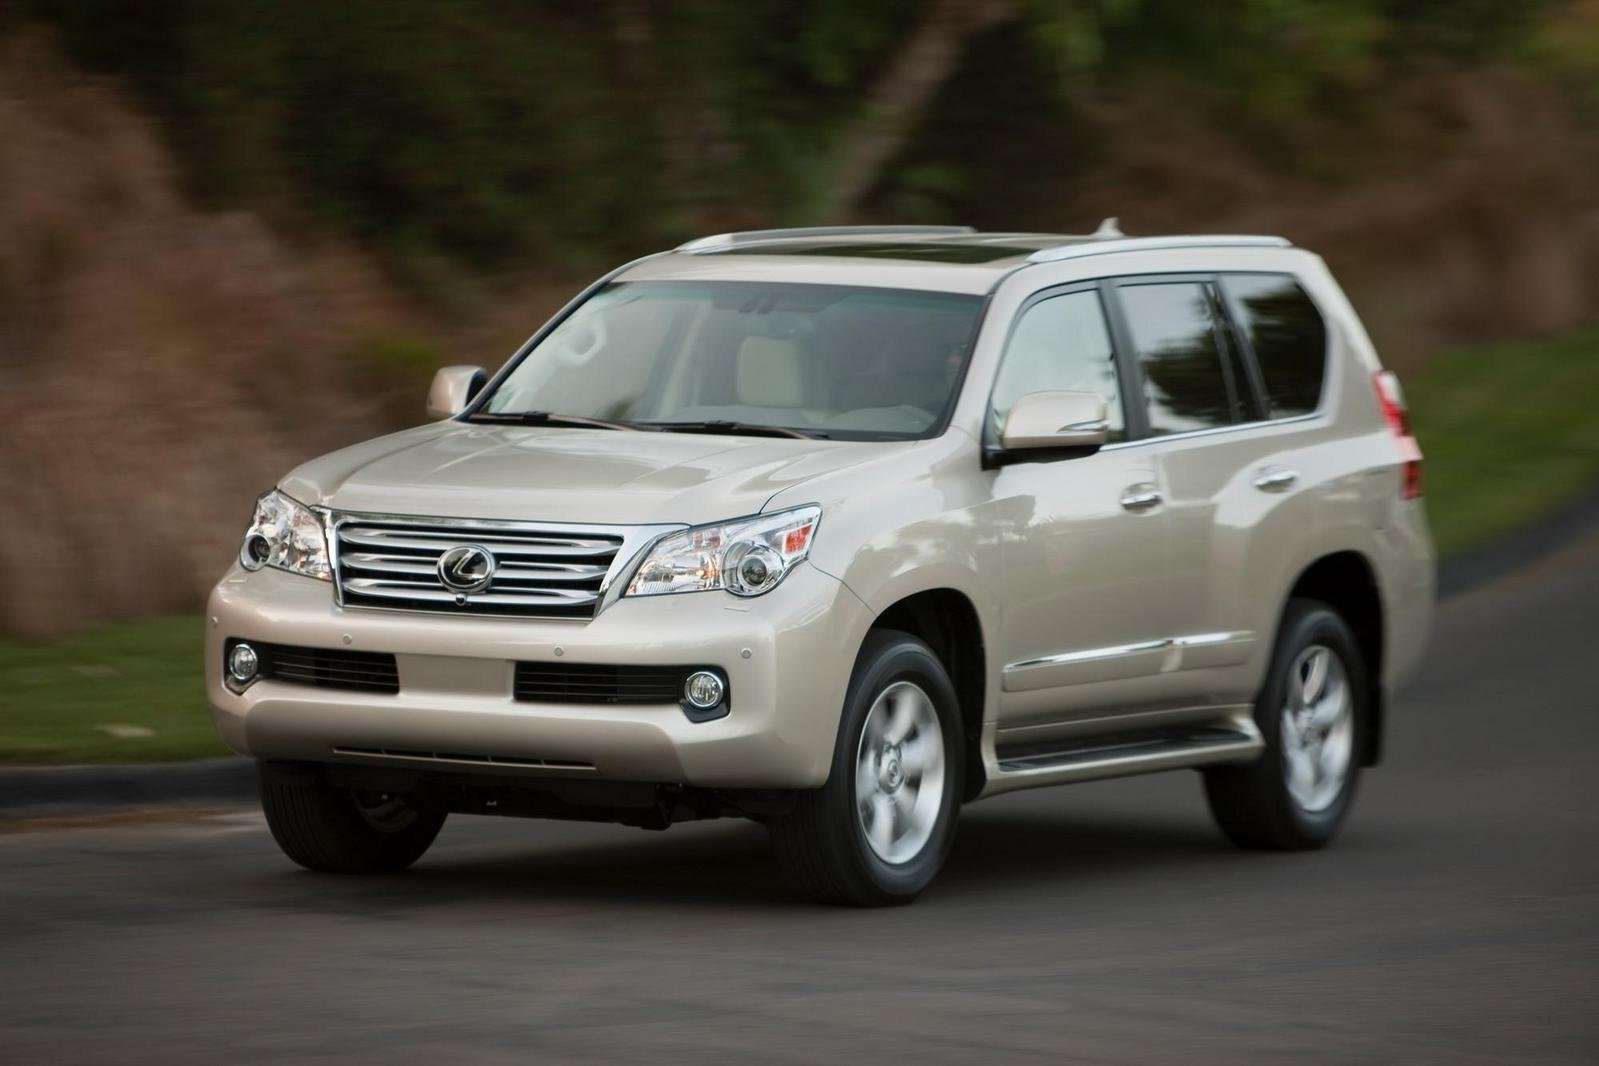 Lexus Suv For Sale >> 2010 Lexus GX460 Review - Top Speed